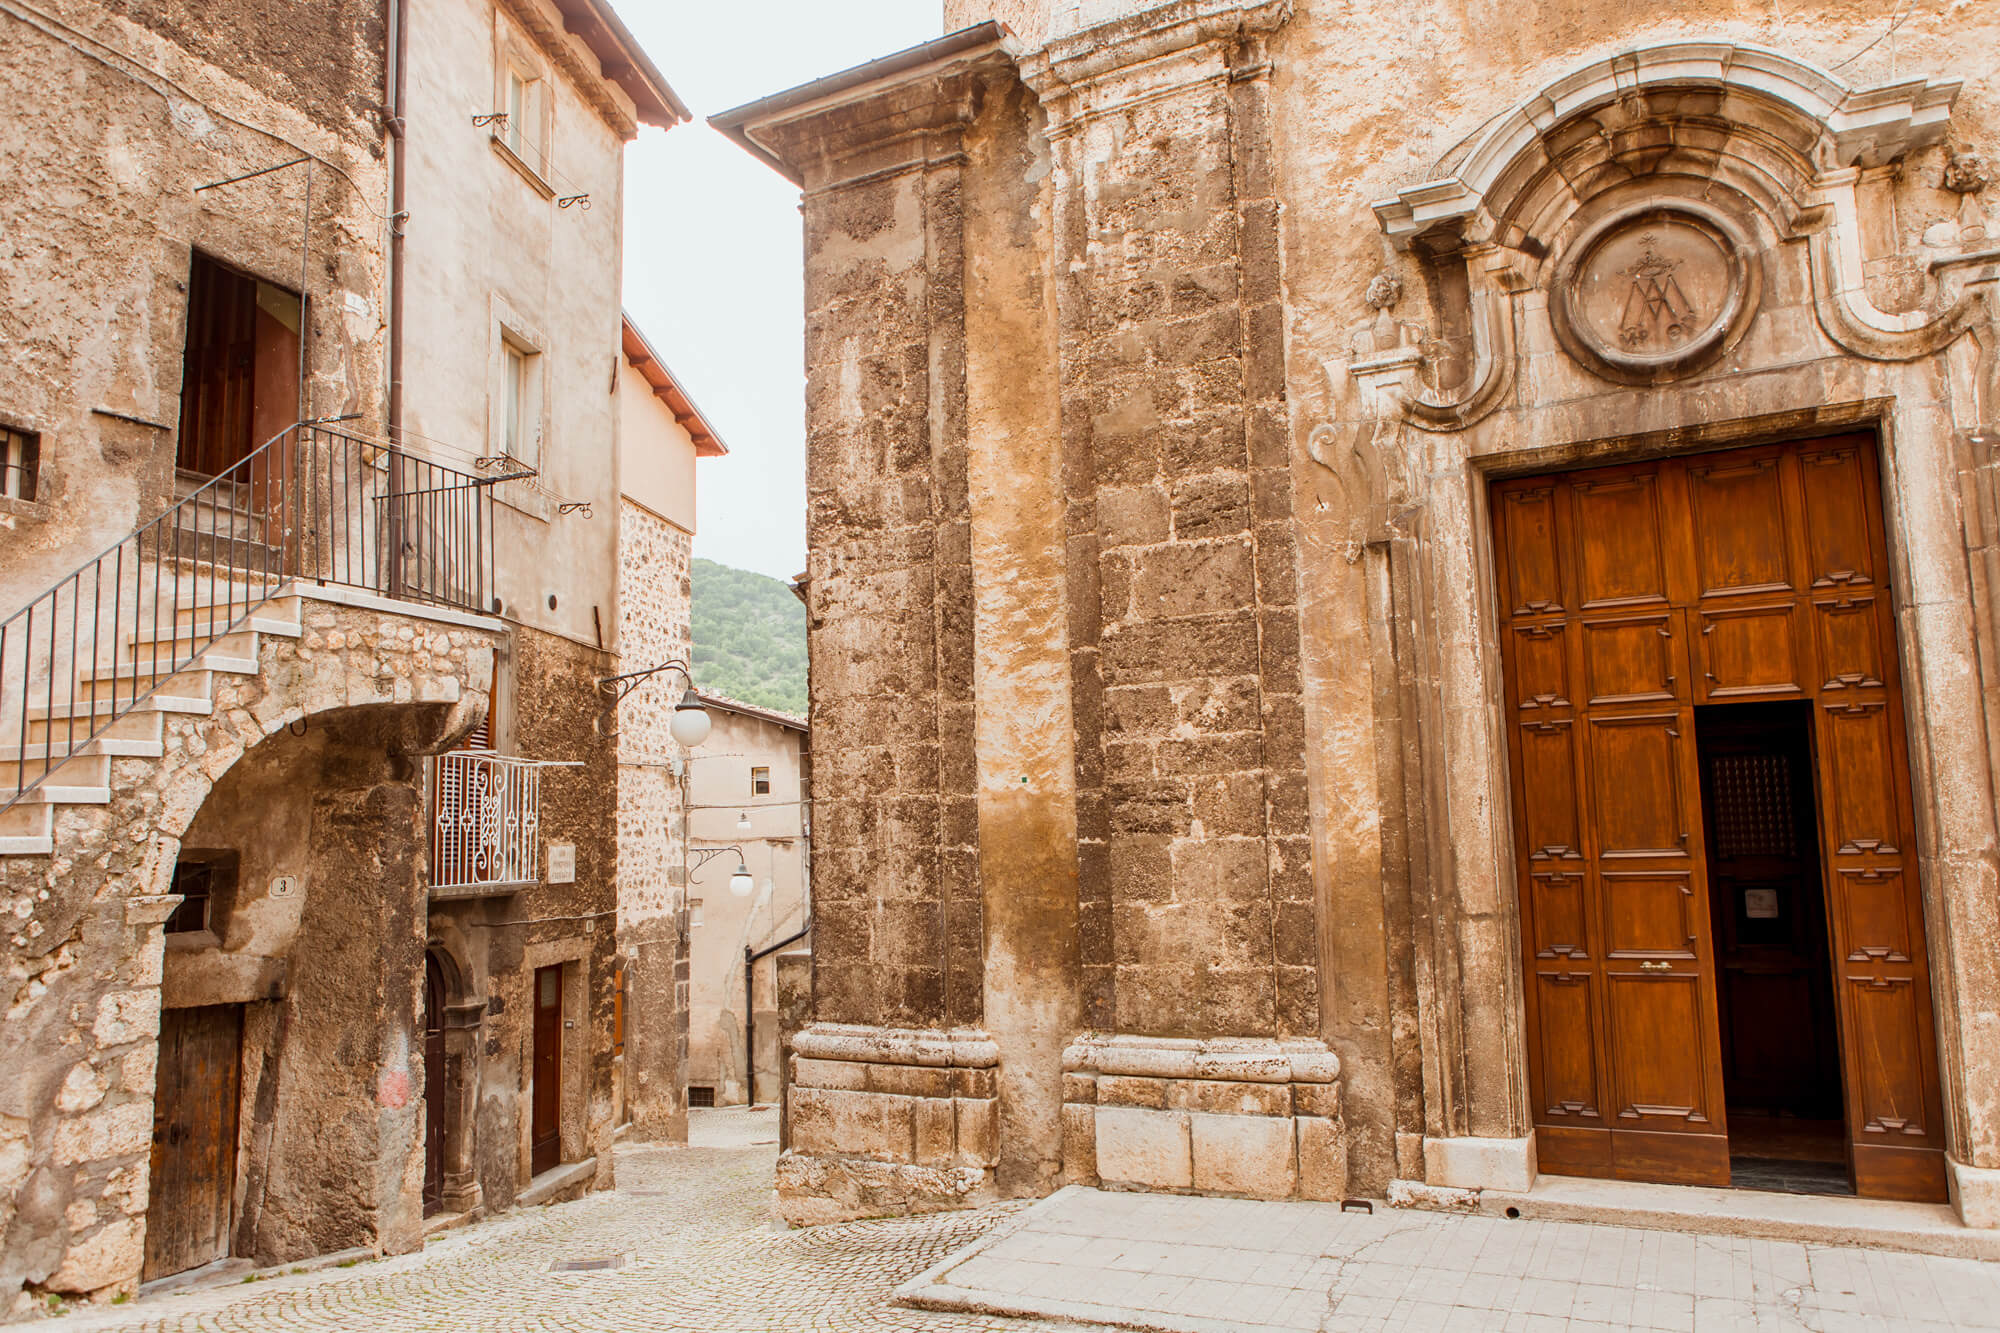 Chiese_Scanno-7